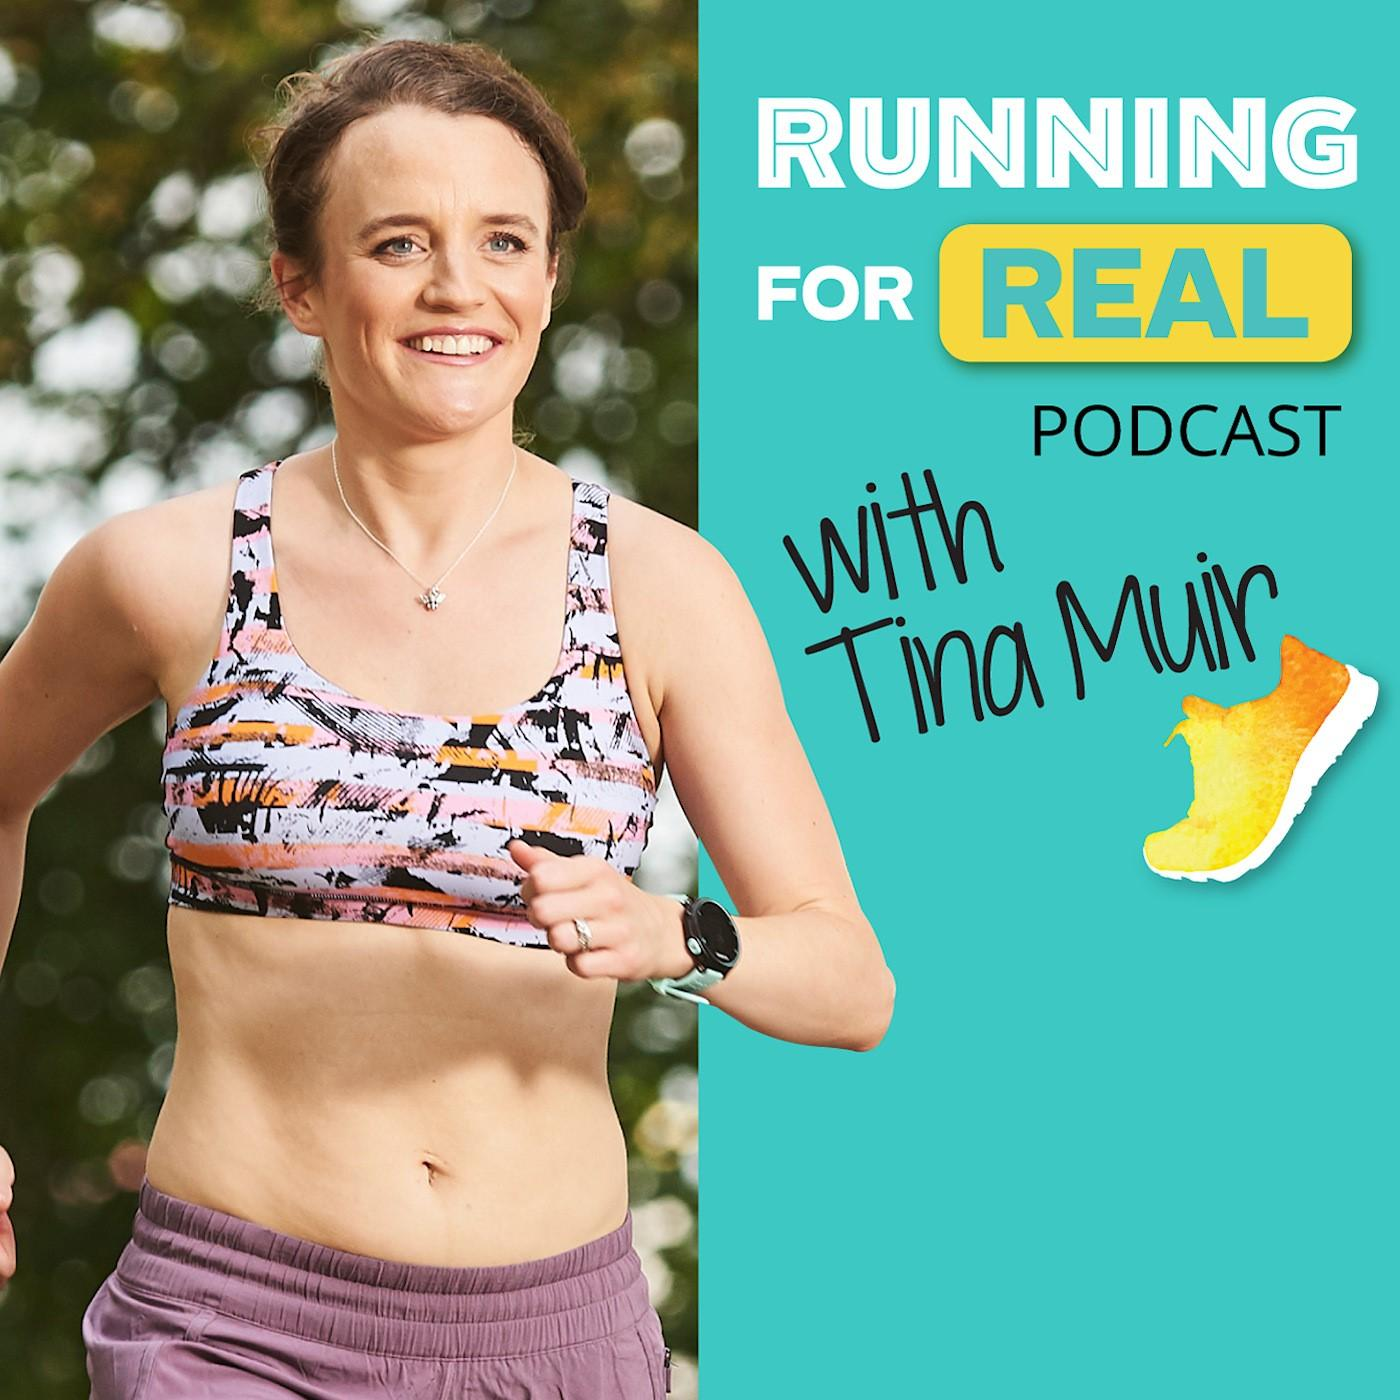 Beyond Running: Asthma and Breathing Problems with Dr John Dickinson - R4R 149